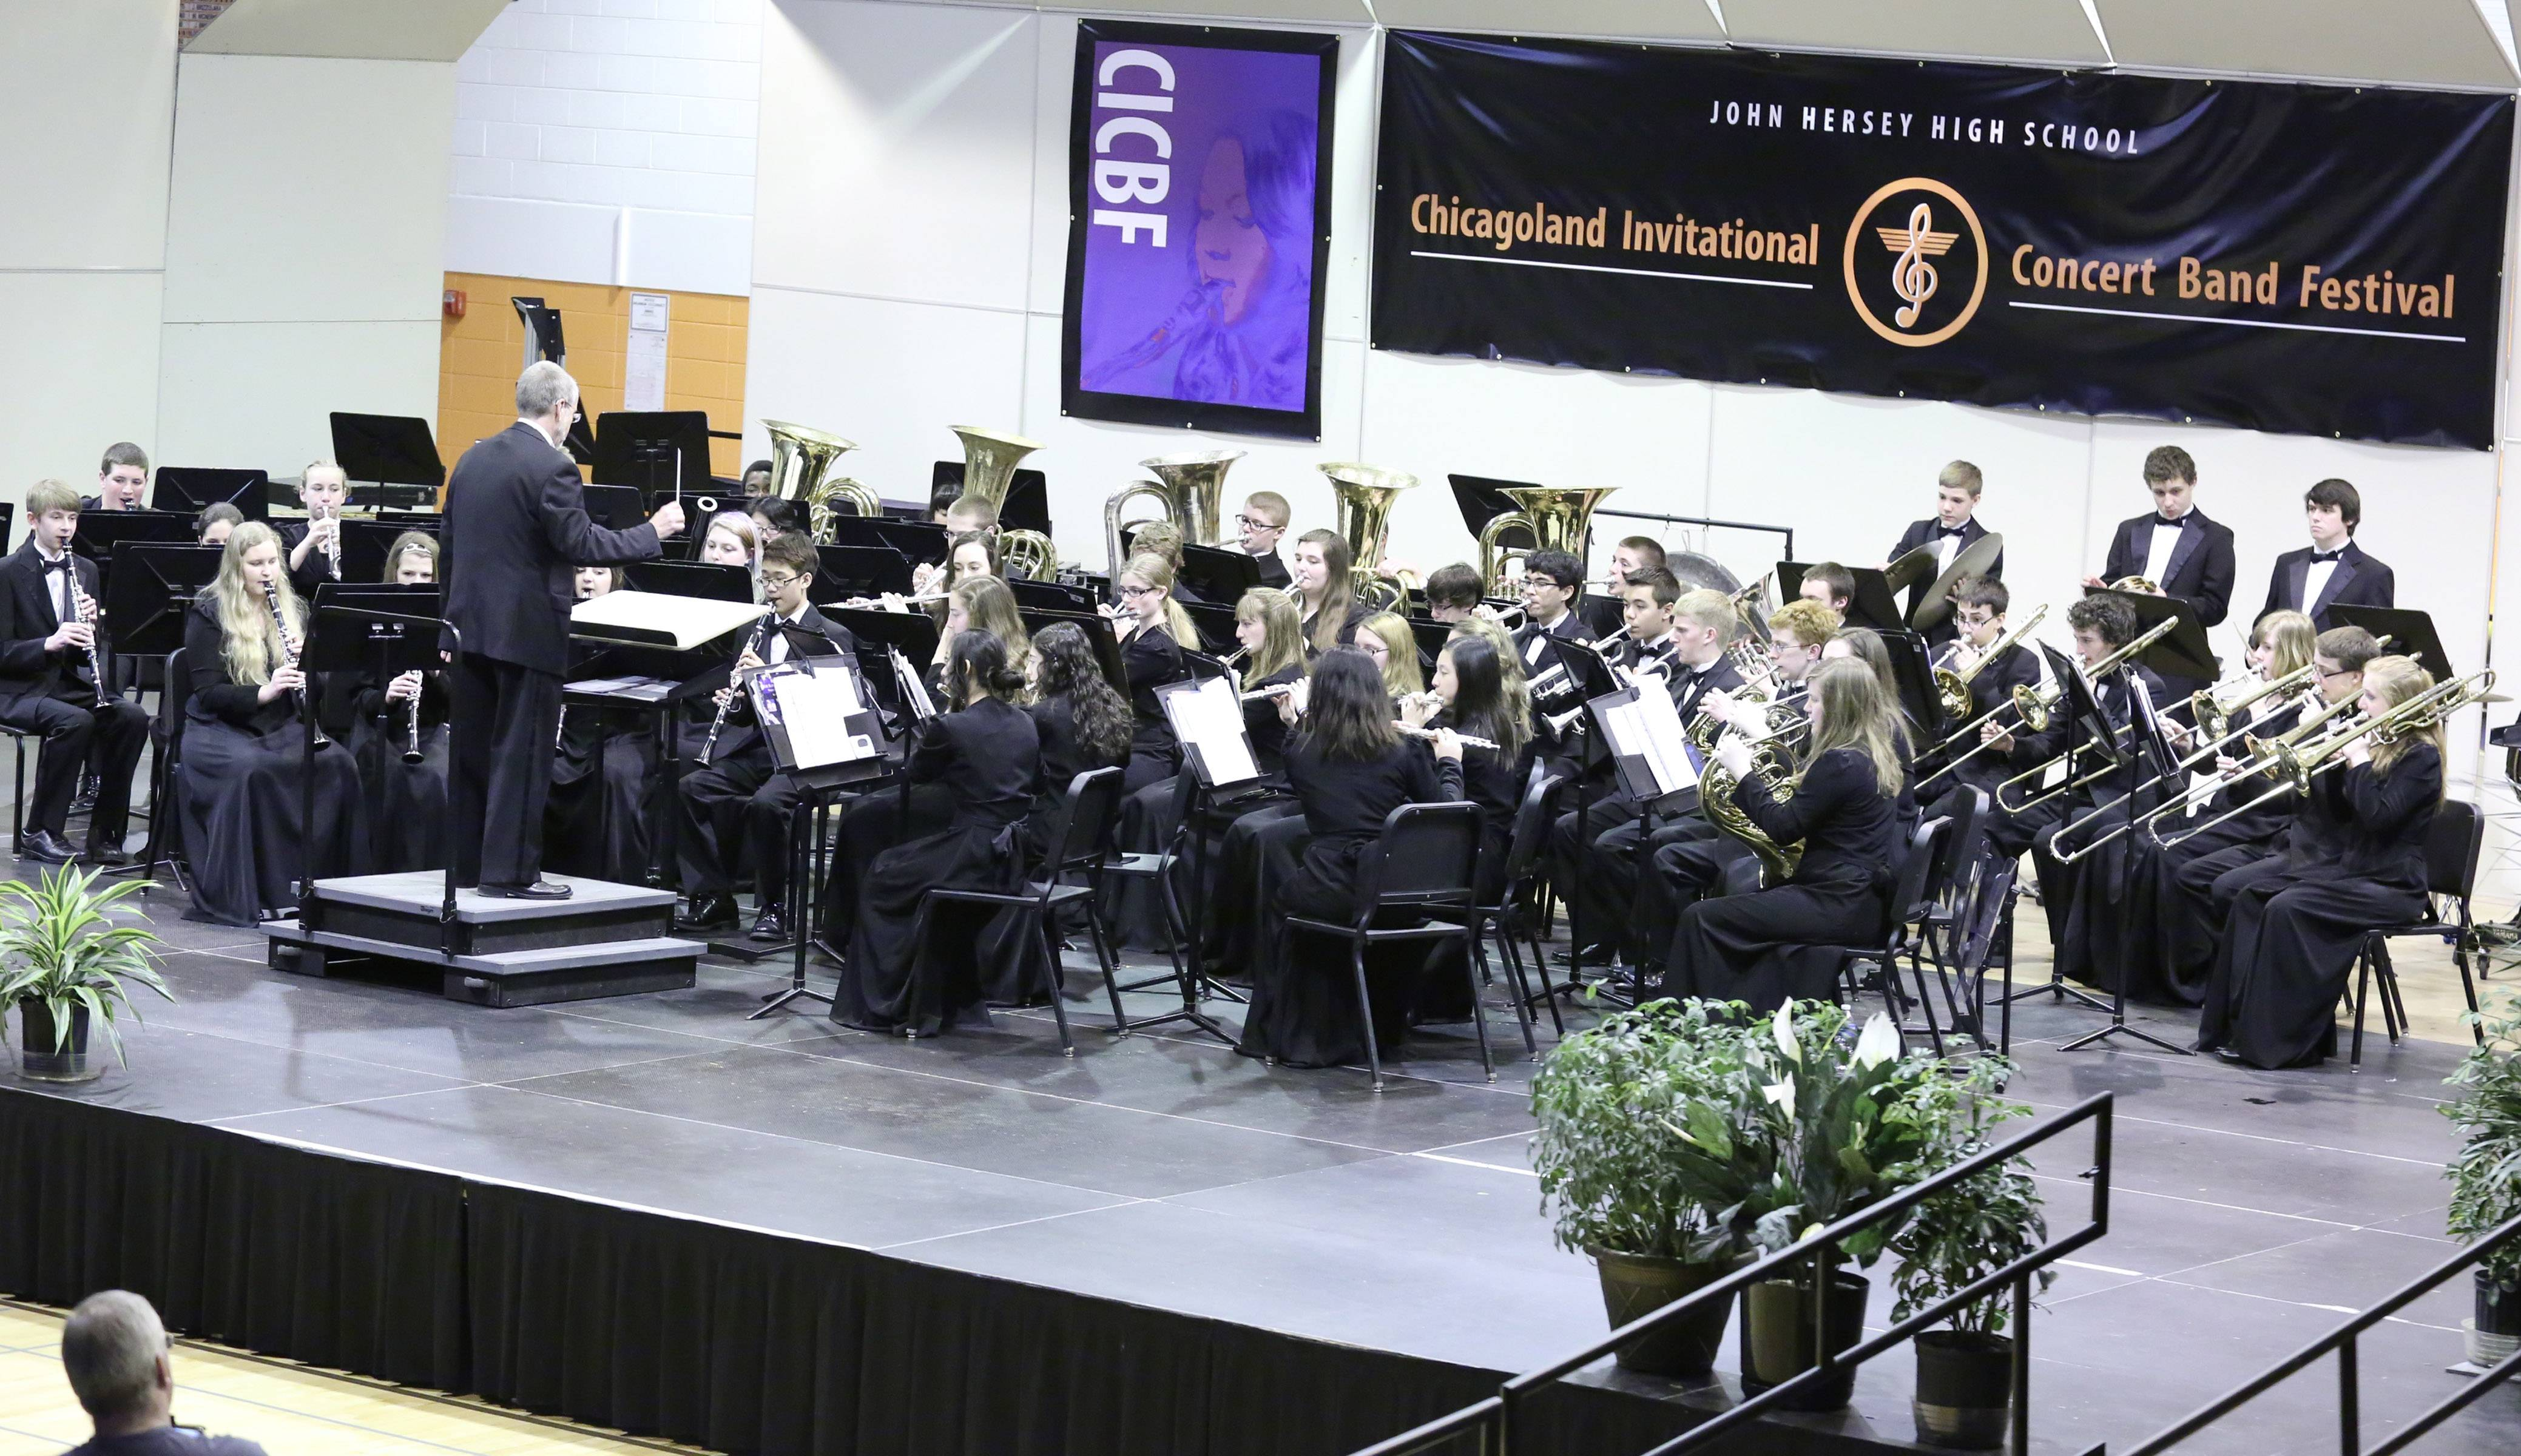 The John Hersey High School Concert Band, conducted by Tom Beckwith, takes the stage at the 14th Annual Chicagoland Invitational Concert Band Festival Saturday at the Arlington Heights school.